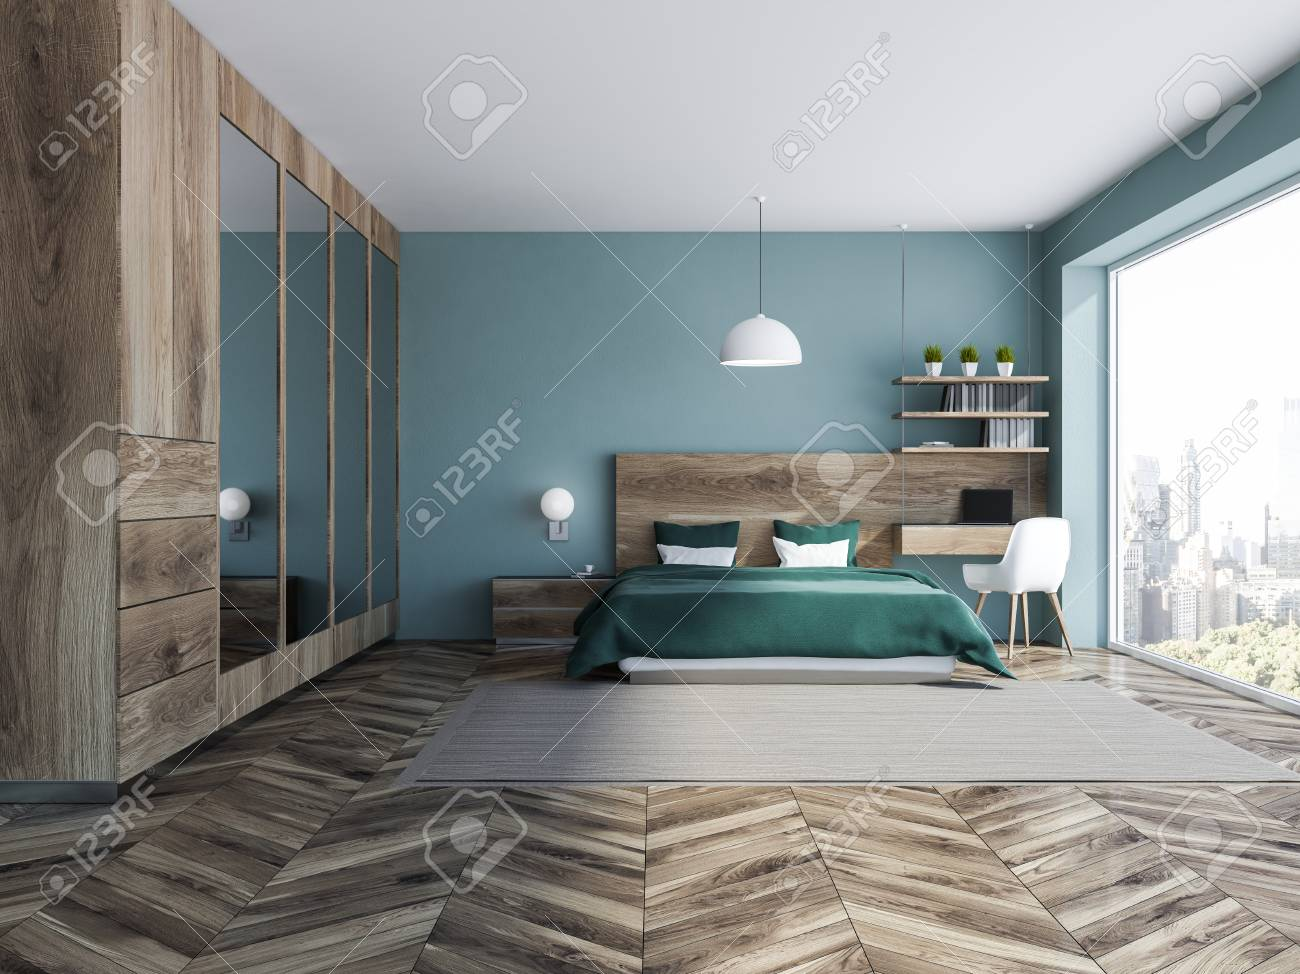 Interior of stylish bedroom with blue walls, wooden floor, green..